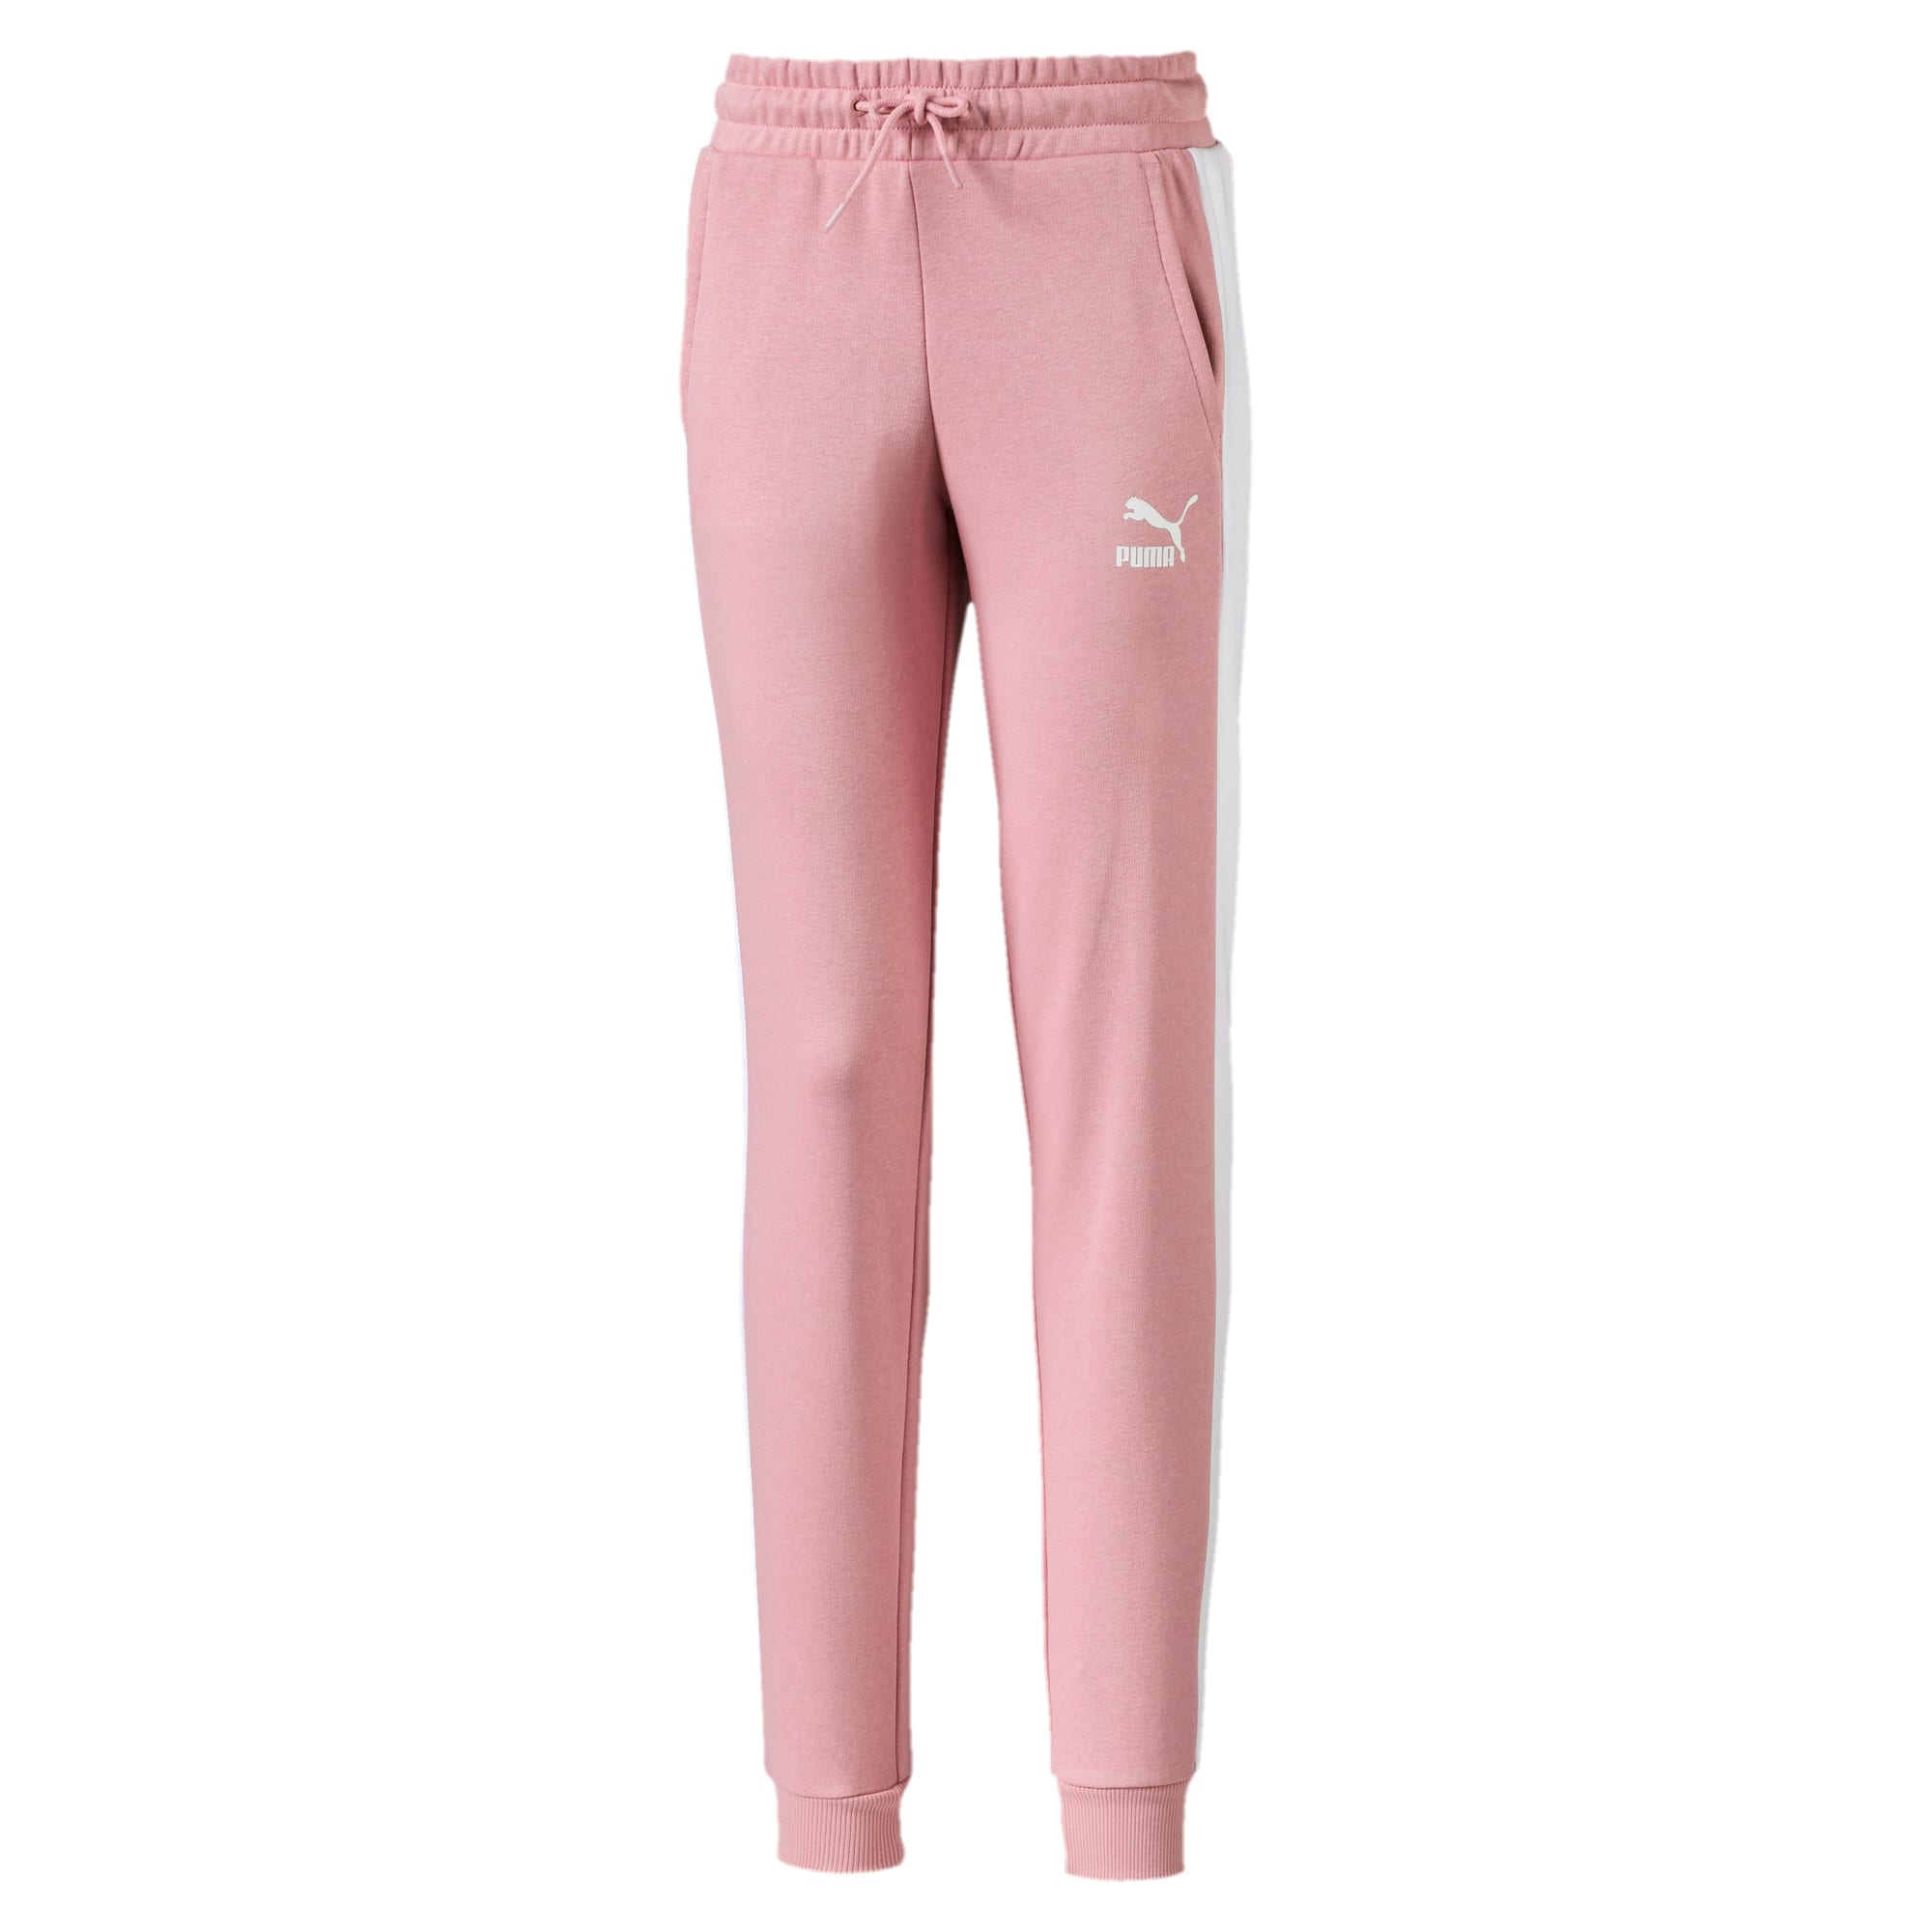 Thumbnail 1 of Classics T7 Knitted Girls' Sweatpants, Bridal Rose, medium